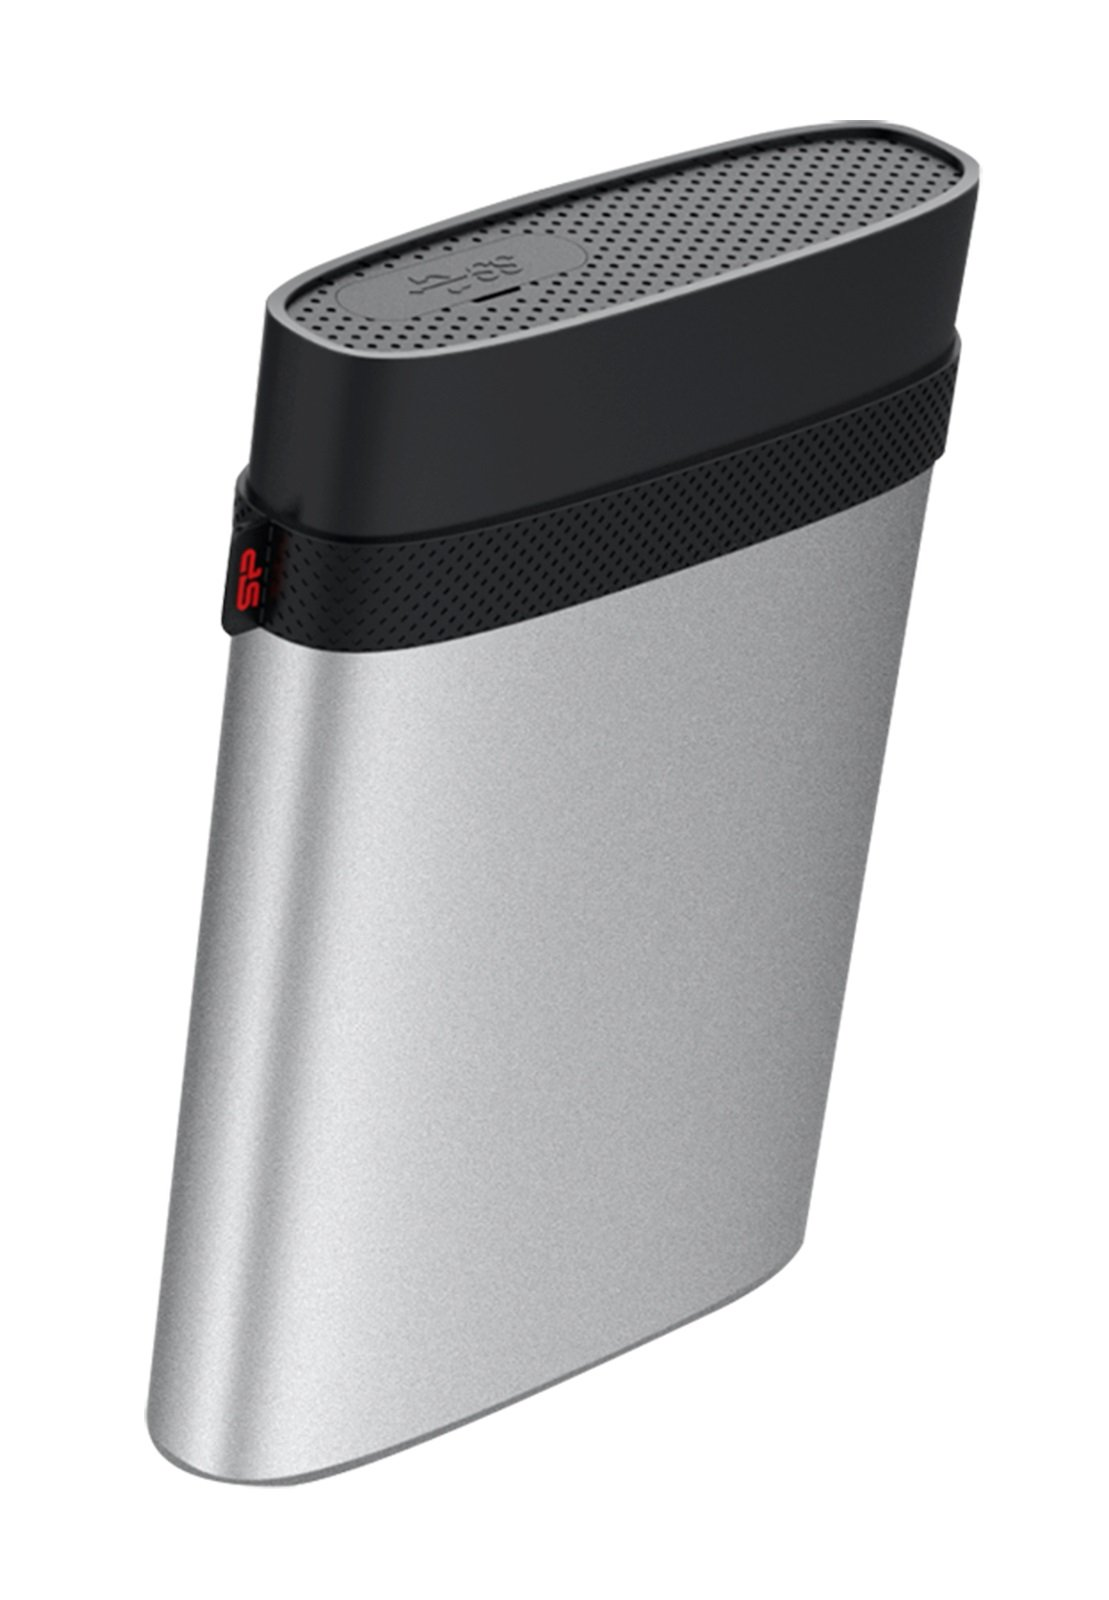 2TB Silicon Power Armor A85 Silver USB3.0 Rugged Portable Hard Drive by Silicon Power (Image #2)